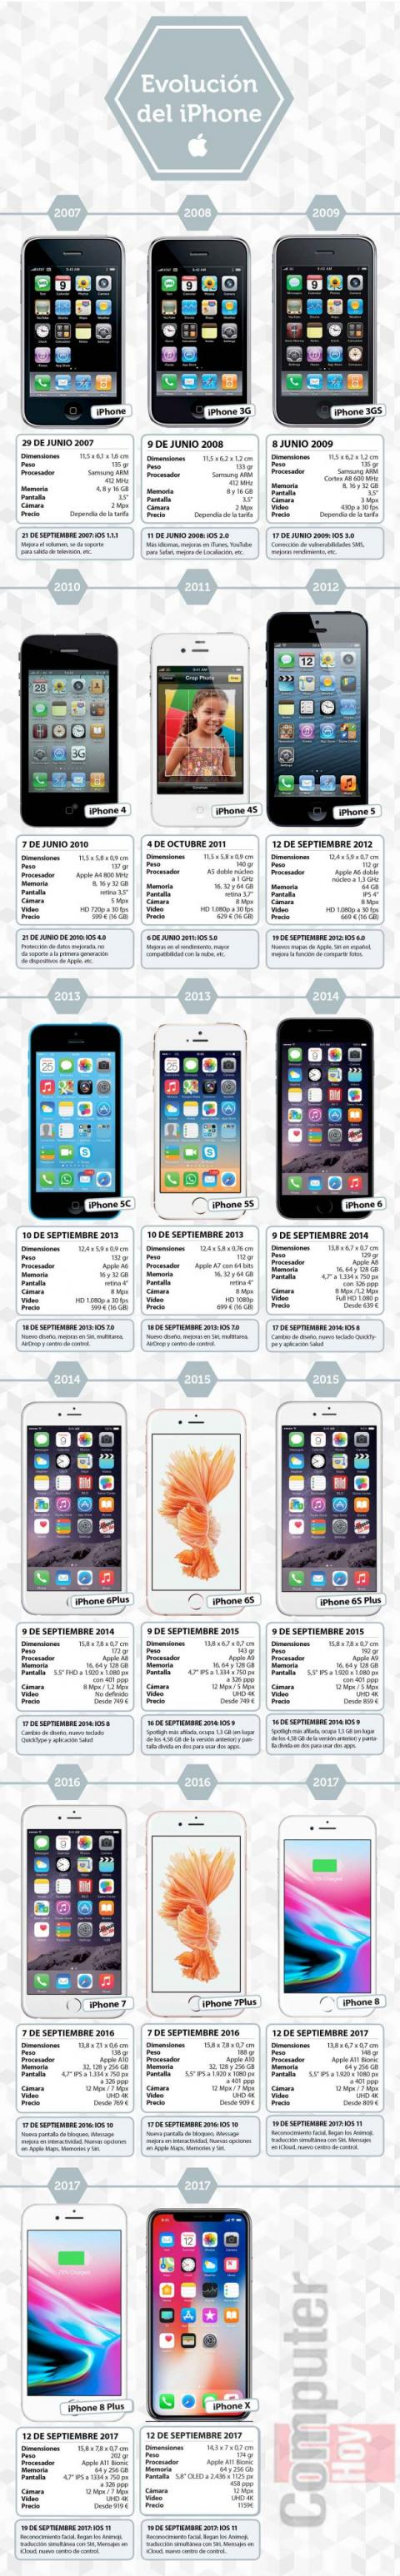 Evolucion historia iphone